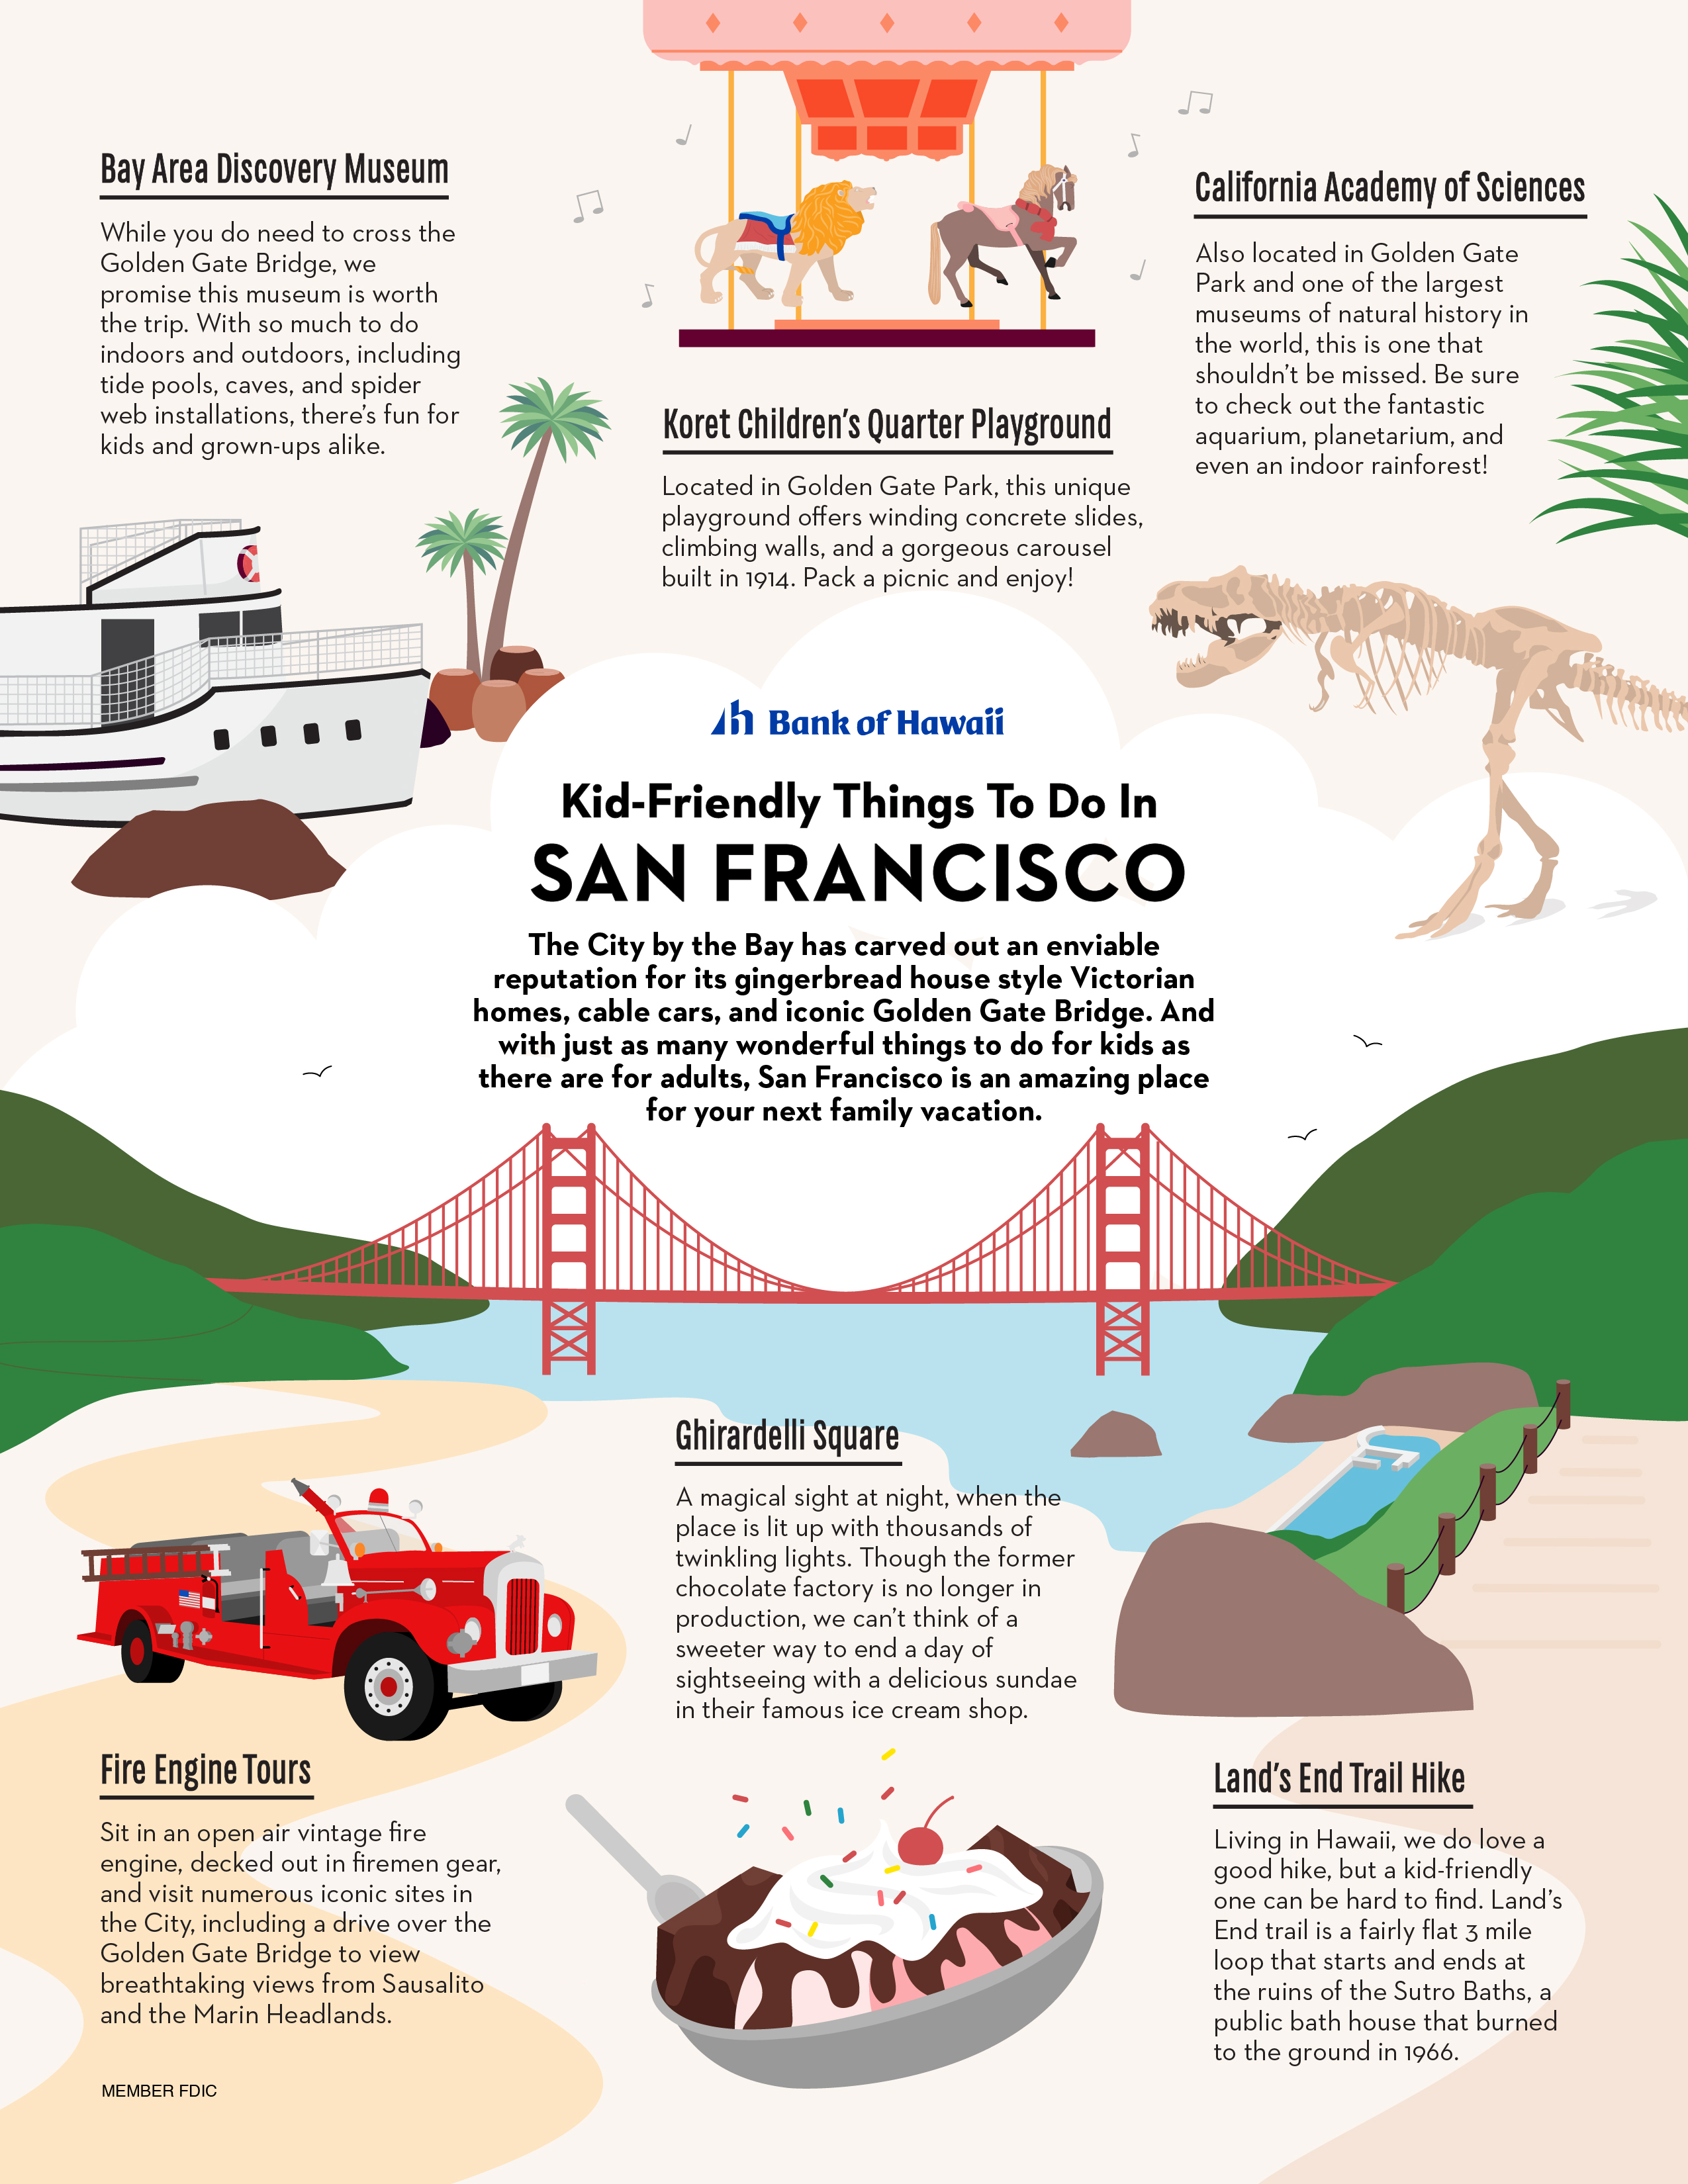 Kid-Friendly Things To Do In San Francisco Infographic